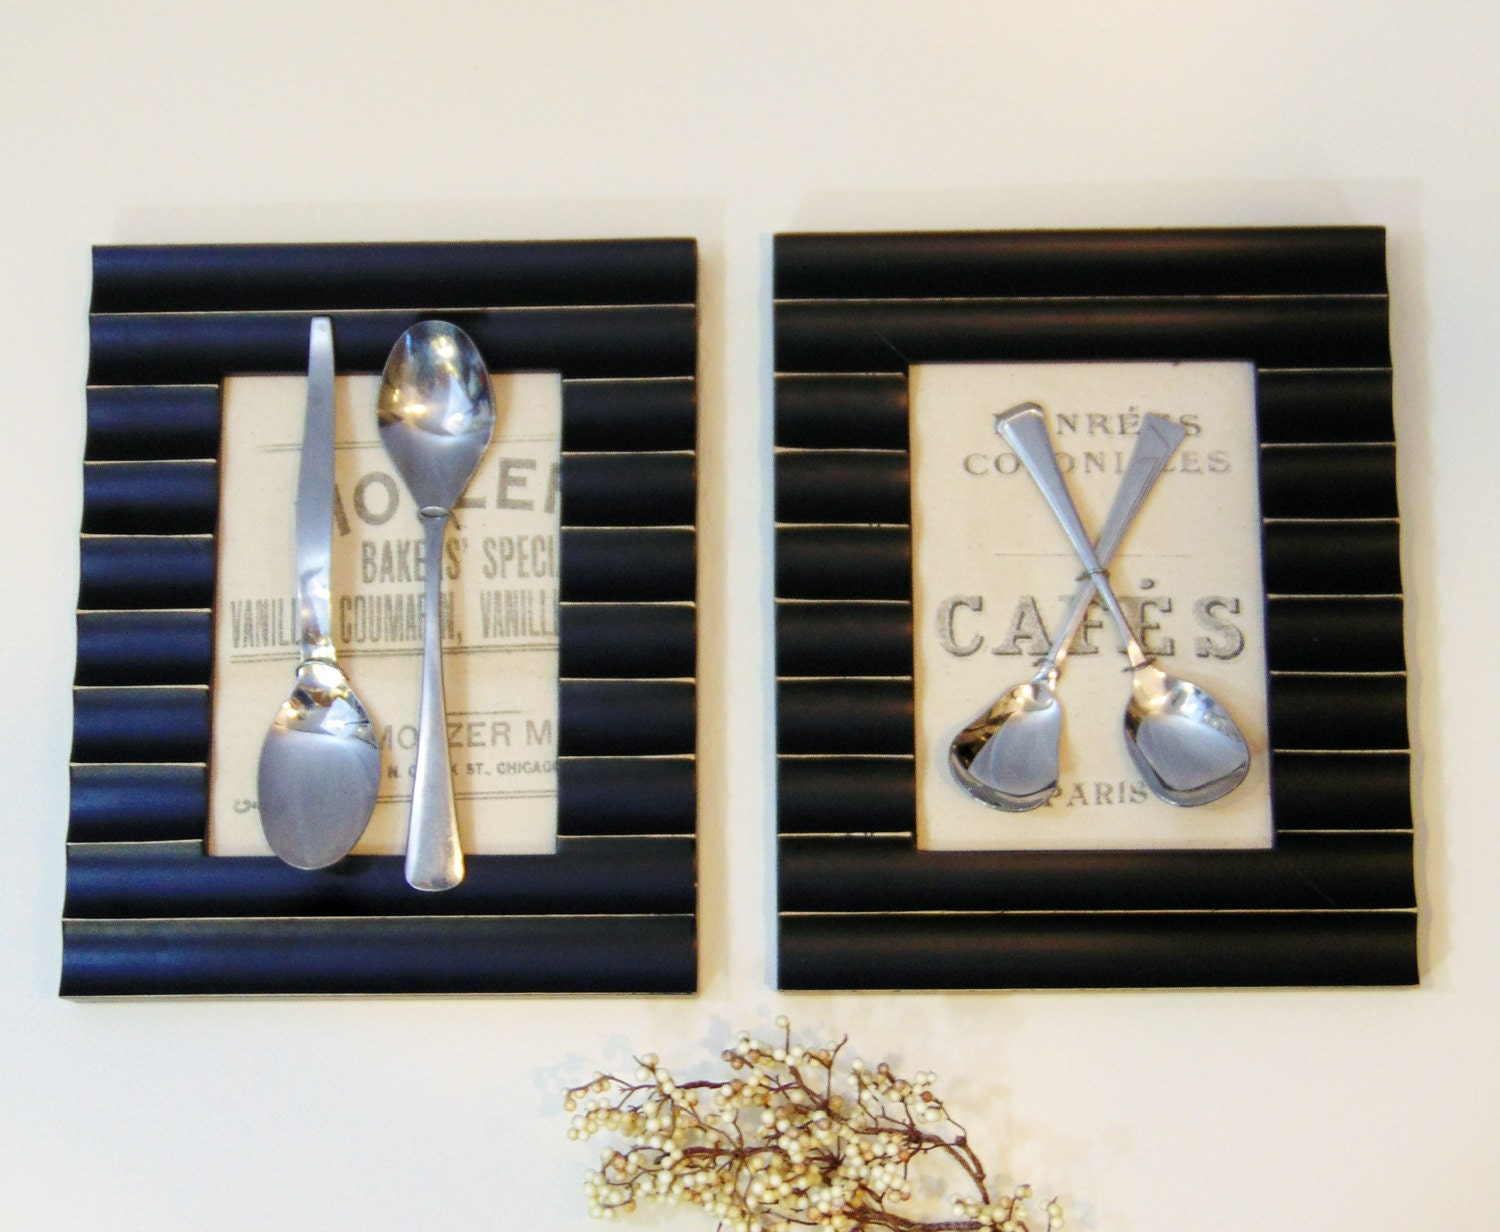 Modern vintage silverware framed wall art with typography for Dining room vintage wall art